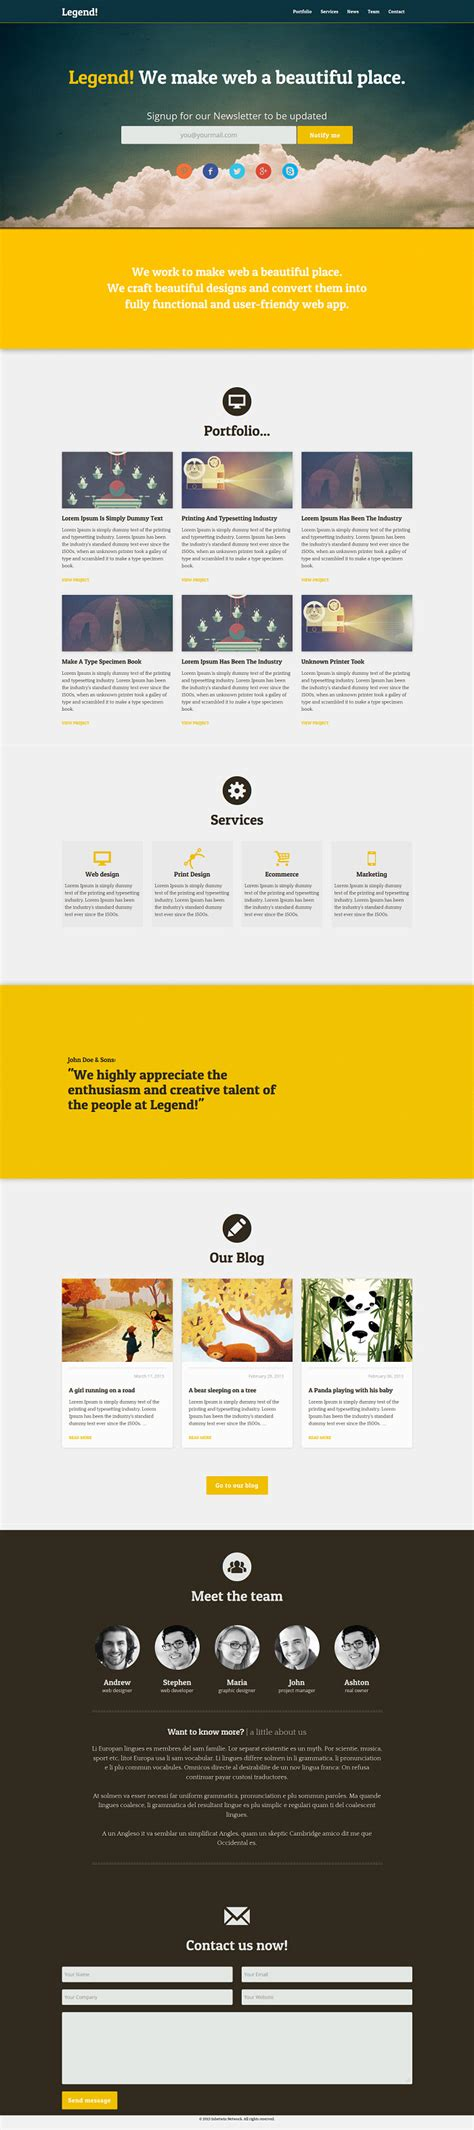 Responsive Psd Web Templates 25 Free Templates Psd Files Design Blog Web Layout Templates